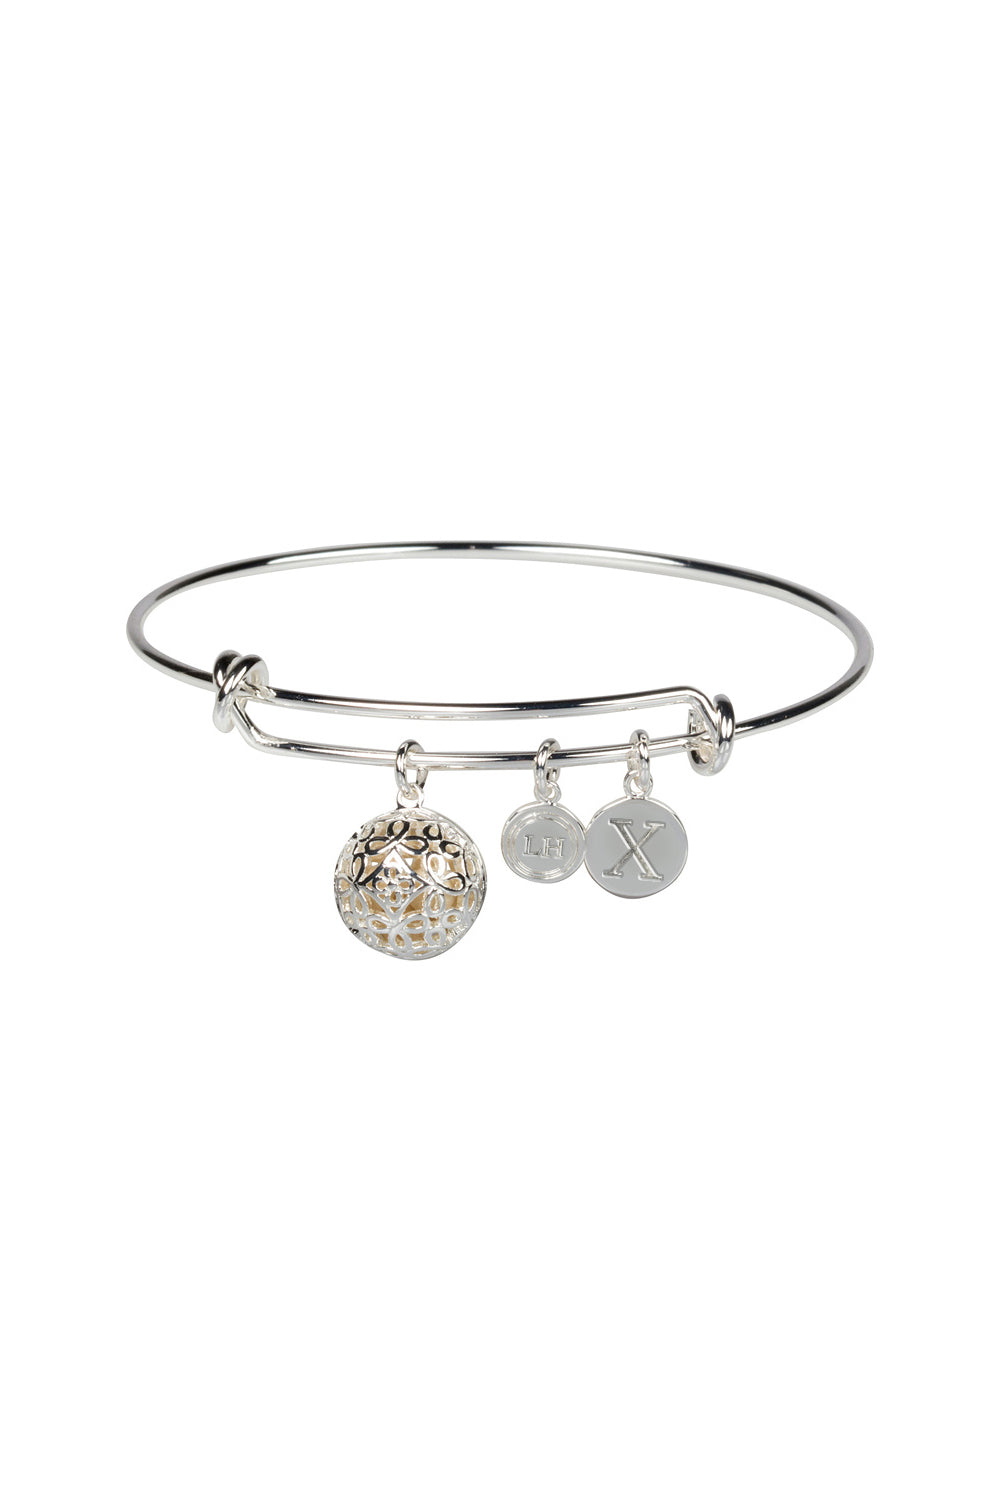 """X"" Initial Fragrance Bangle with Silver Tone Charm"